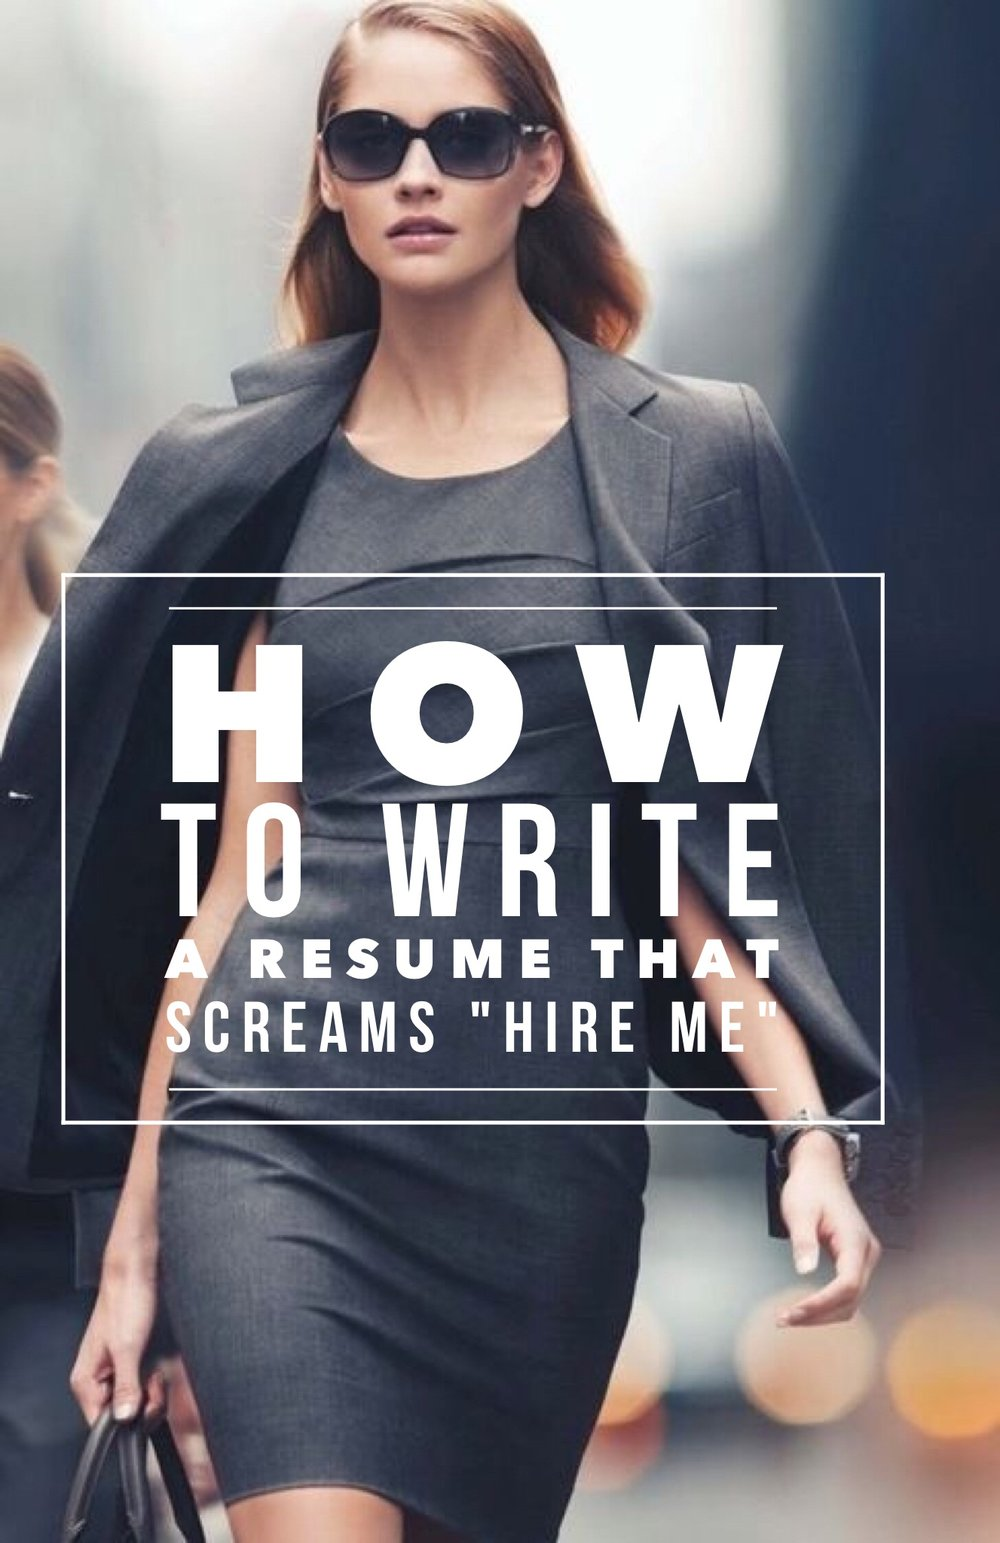 Resume Writing1.jpg